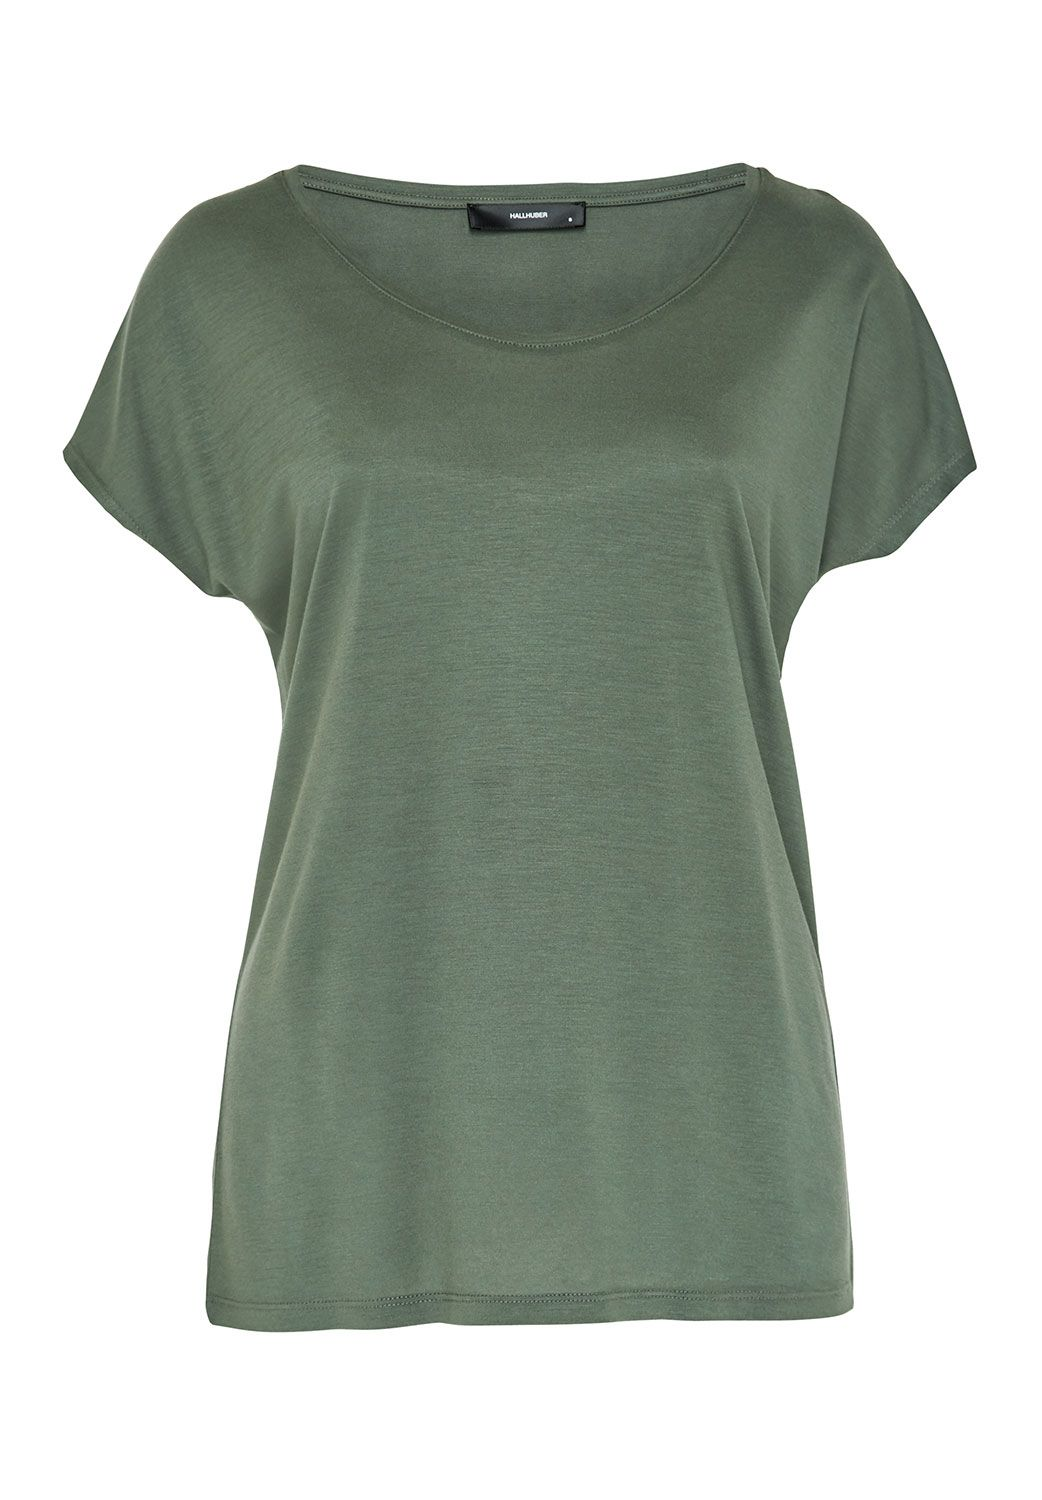 Hallhuber Basic Tee With Plunging Neckline, Green